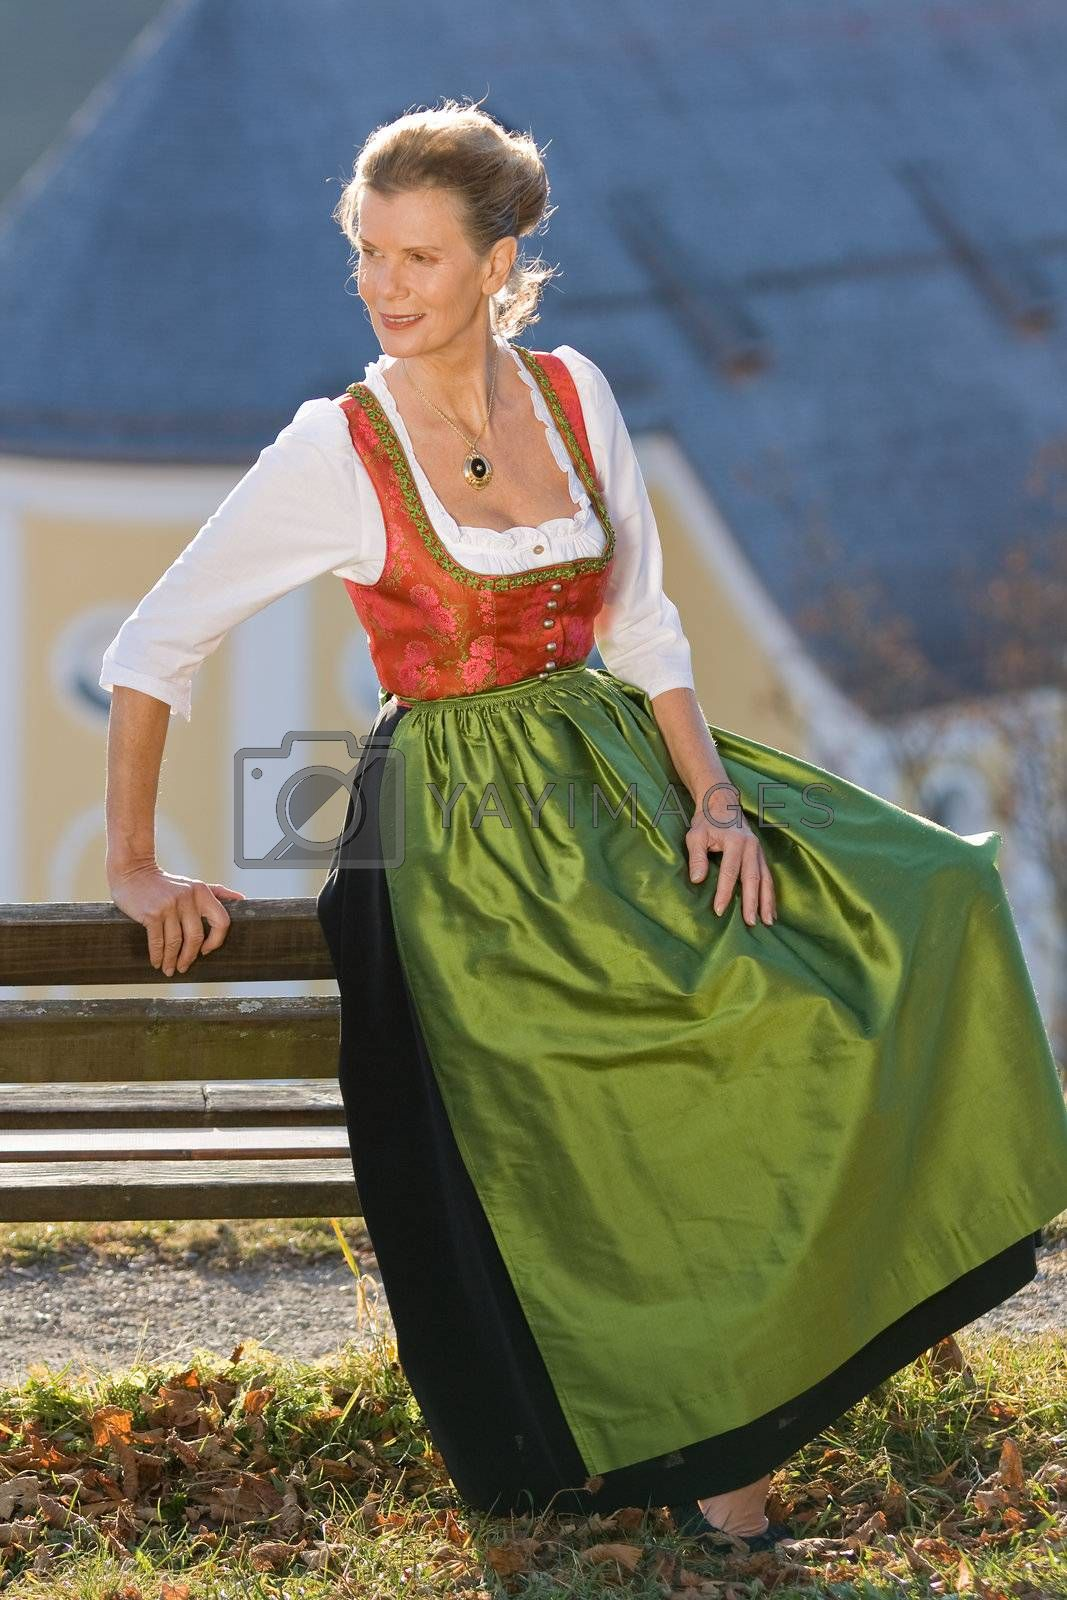 Old Bavarian woman in fashionable festive costume